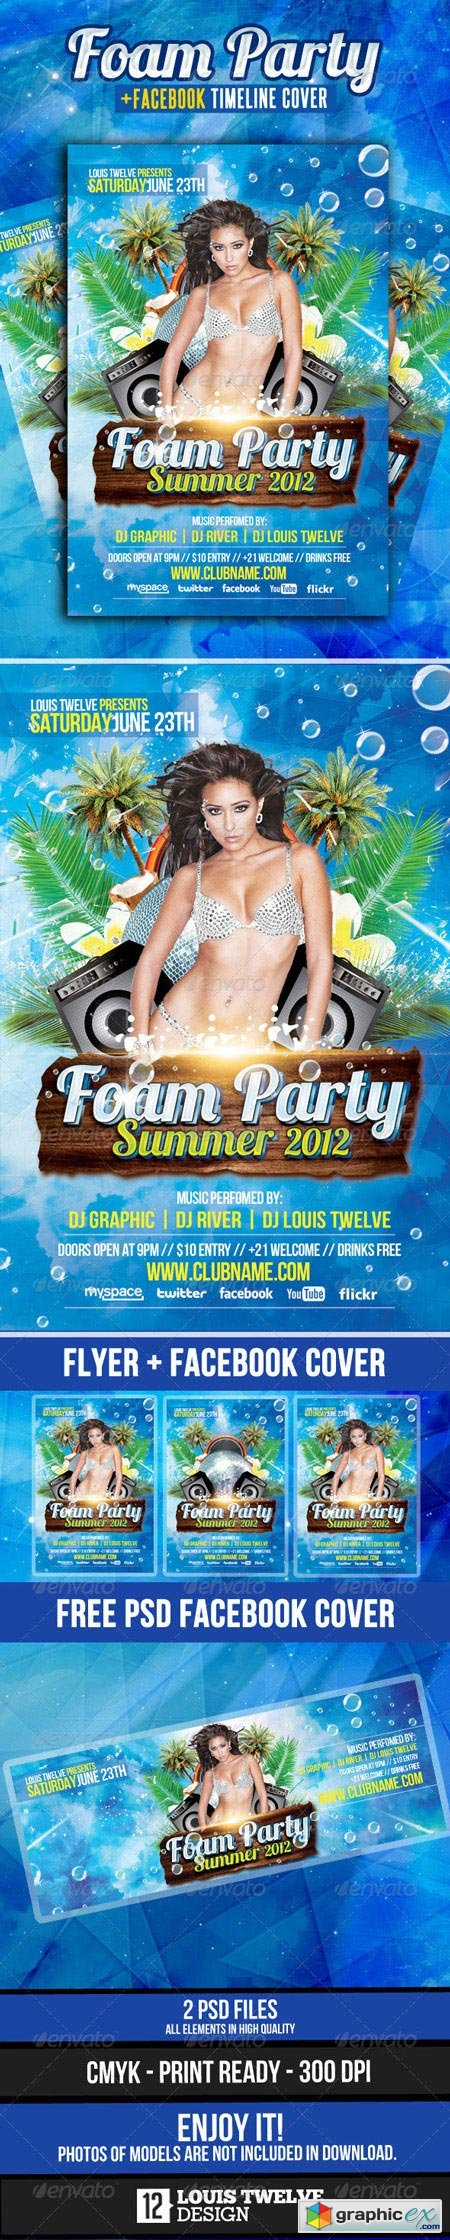 Foam Party Summer Flyer with Facebook Cover